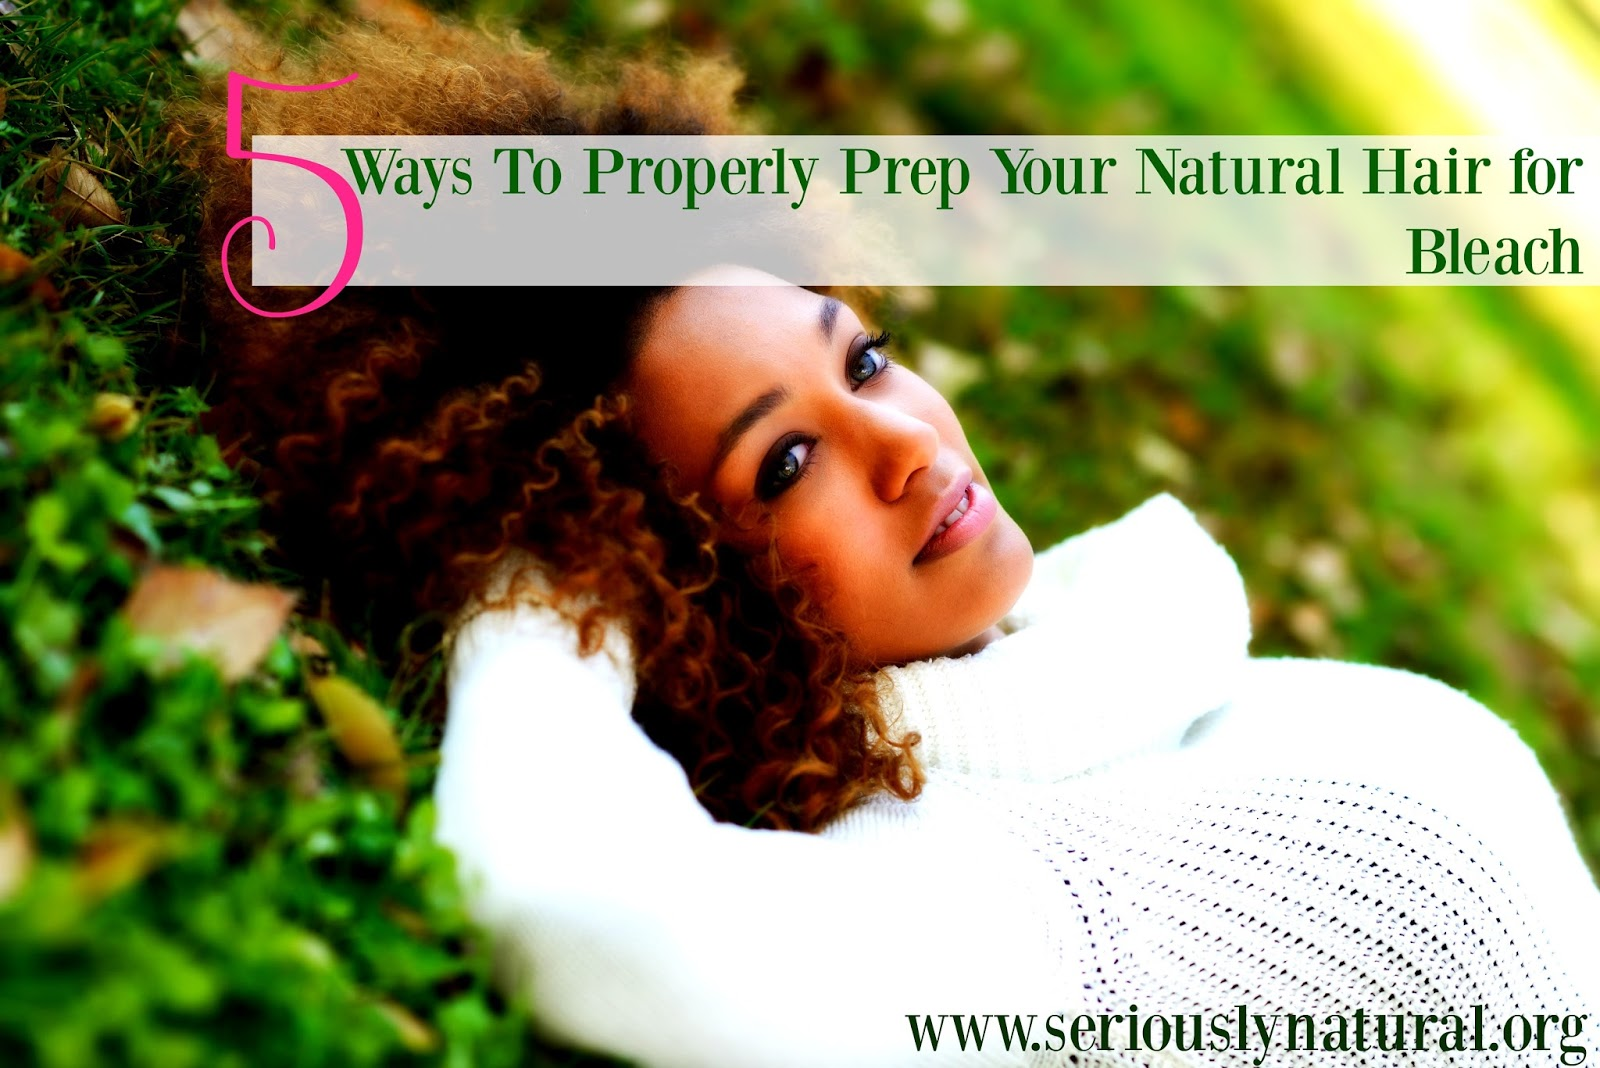 5 Ways To Properly Prep Your Natural Hair for Bleach